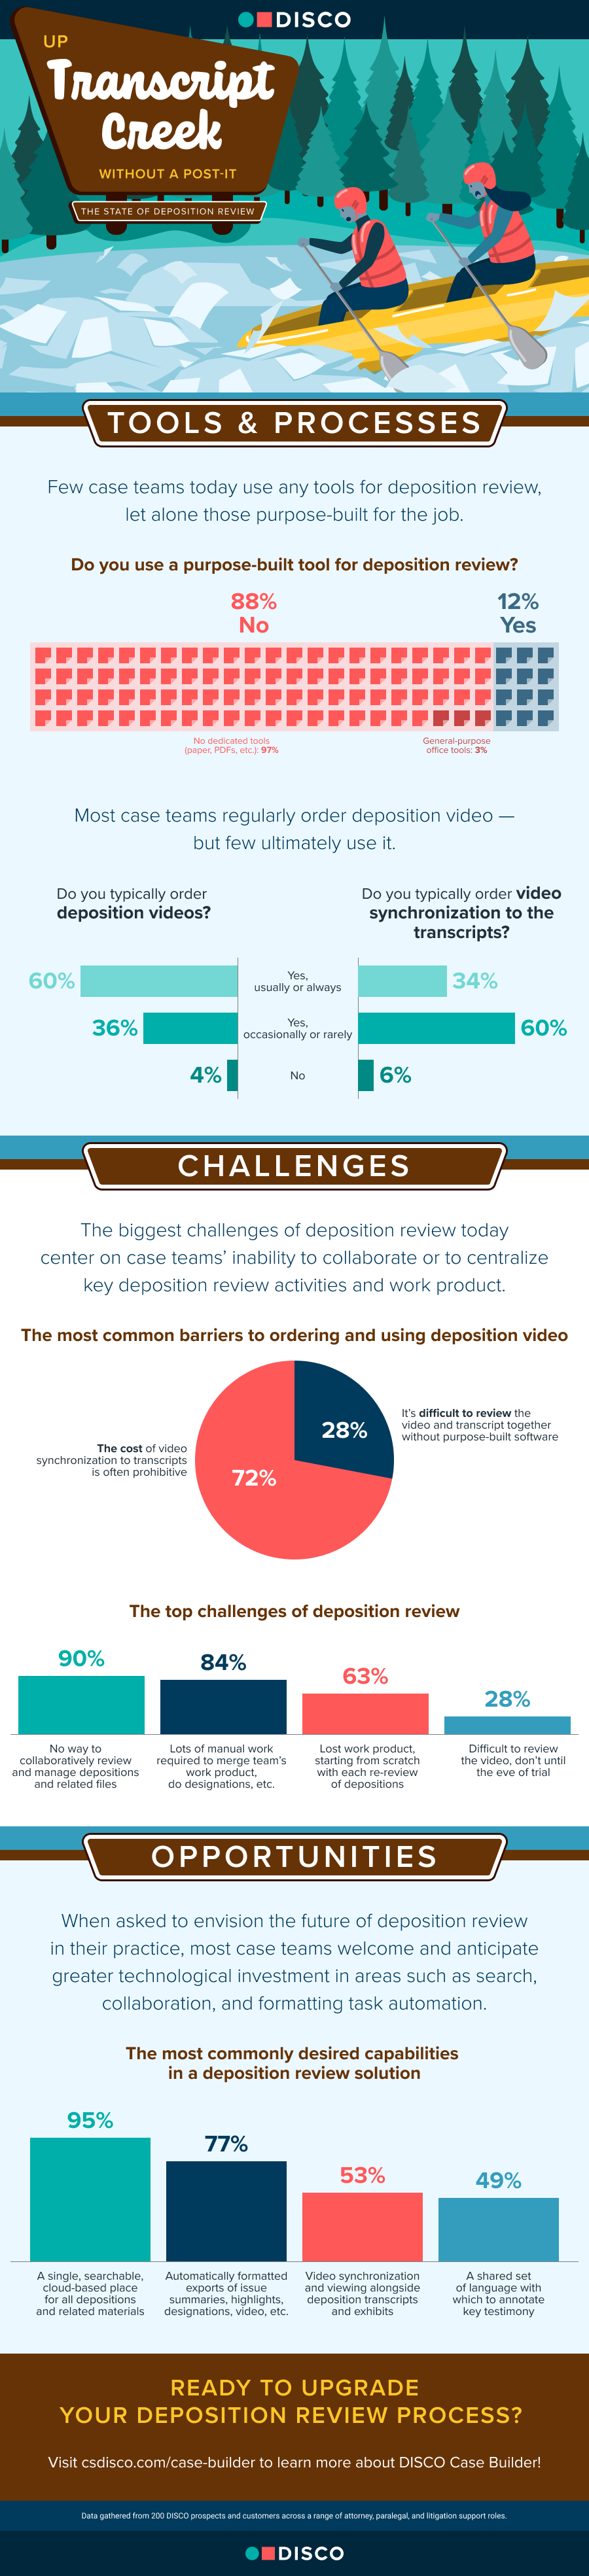 Infographic on depositions